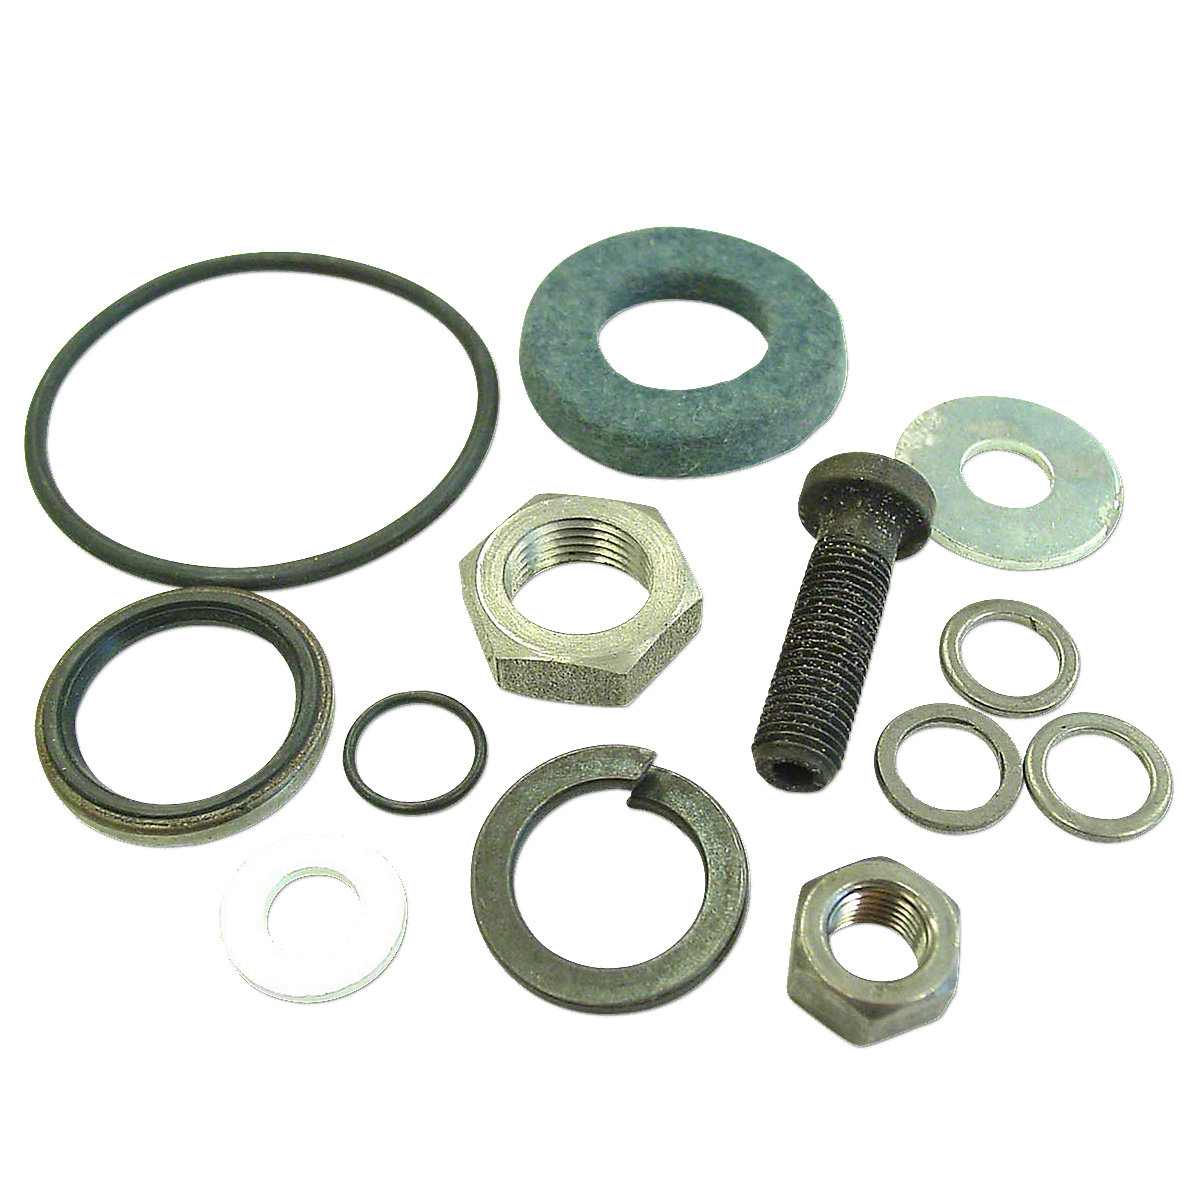 Fits: [ Super 55, 550 (with manual or power steering) ]; Replaces: Lock washer: 920089, Adjuster bolt: 1A6763A, 1A-6763-A, Shim washers (4): 1AS6822, 1AS-6822, O-ring: 1E6757A, 1E-6757-A, Flat washer: 1E6764, 1E-6764, Seal: 1E6784 , 1E-6784 , Felt: 1L6784, 1L-6784, Nut: 1L6774, 915086, 1L-6774